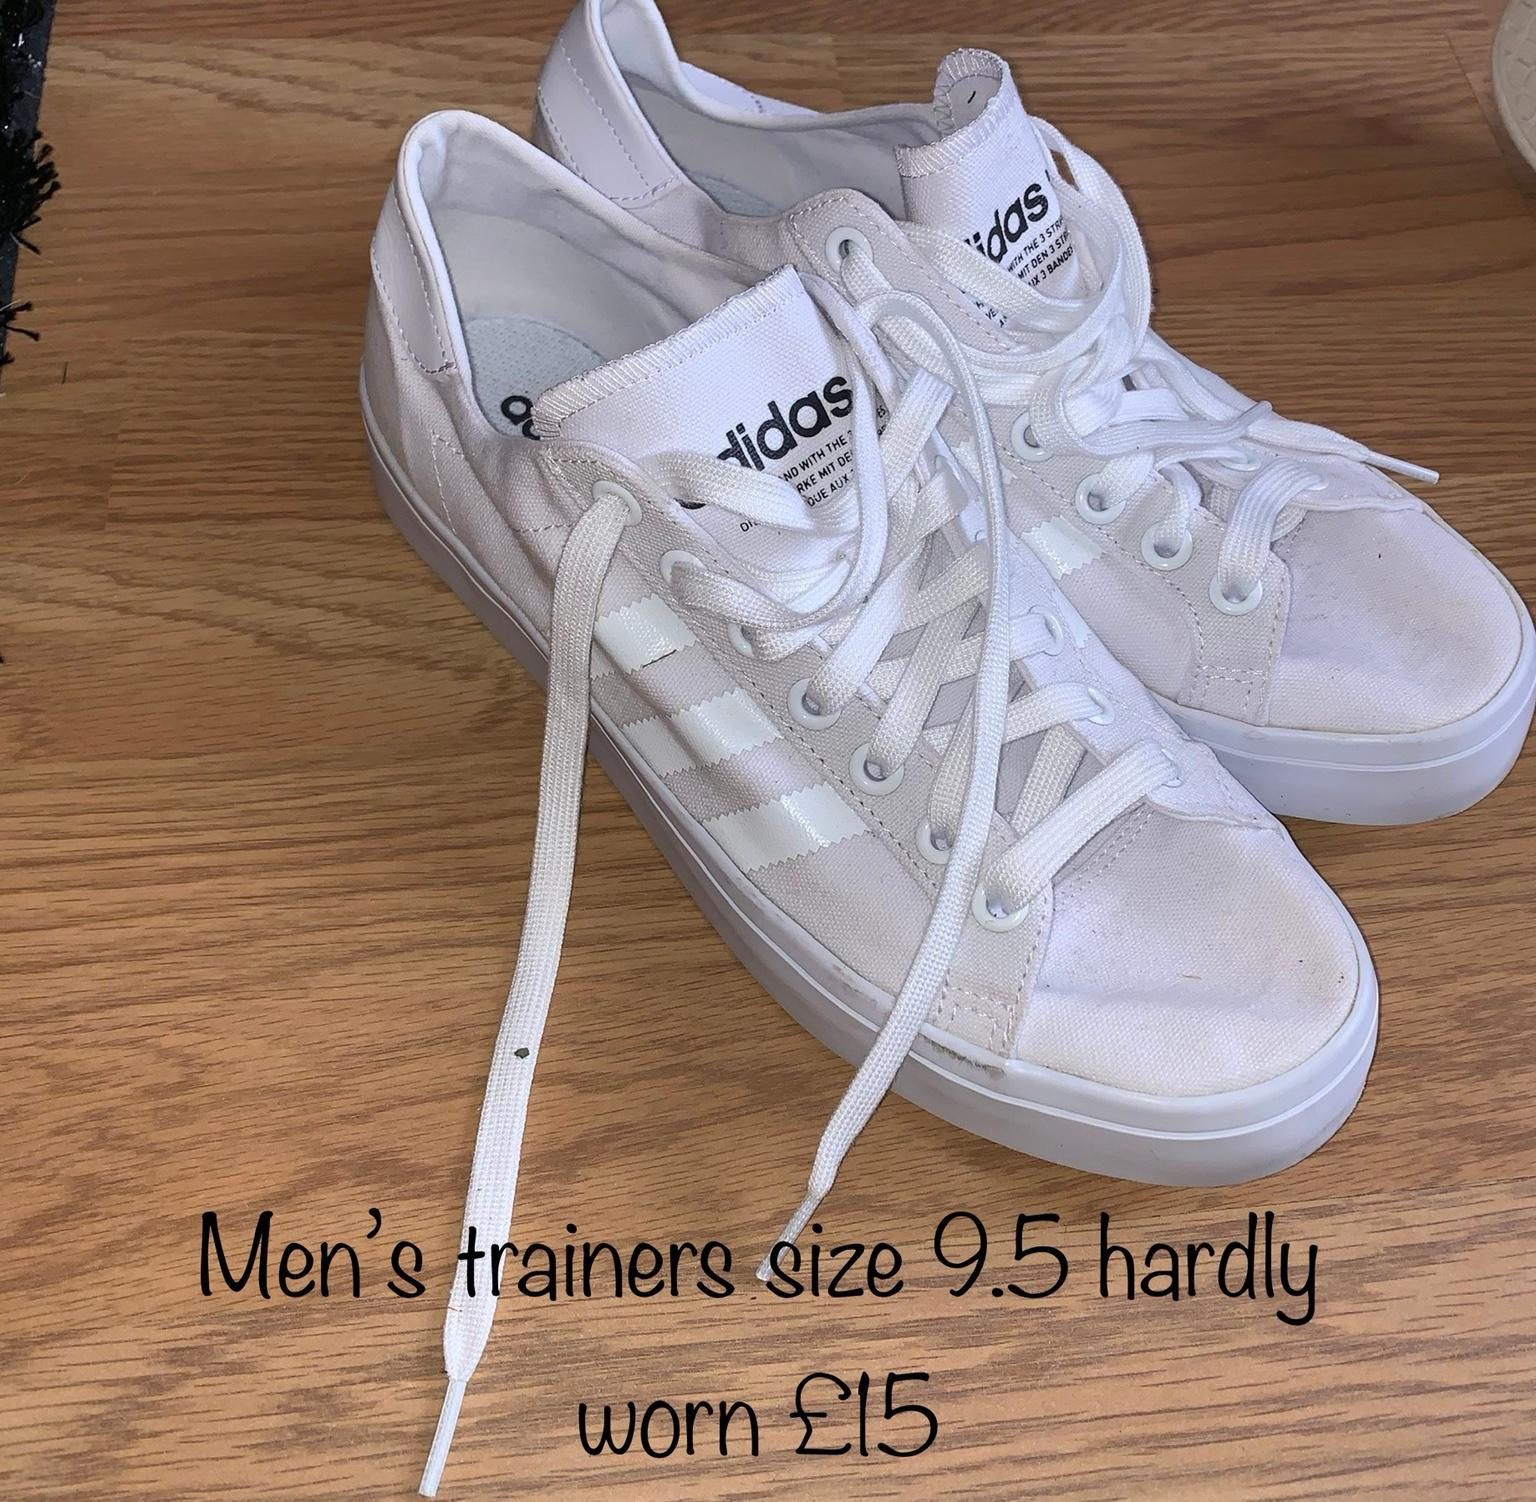 27bc14996 MENS TRAINERS SIZE 9.5 in BS13 Bristol for £15.00 for sale - Shpock